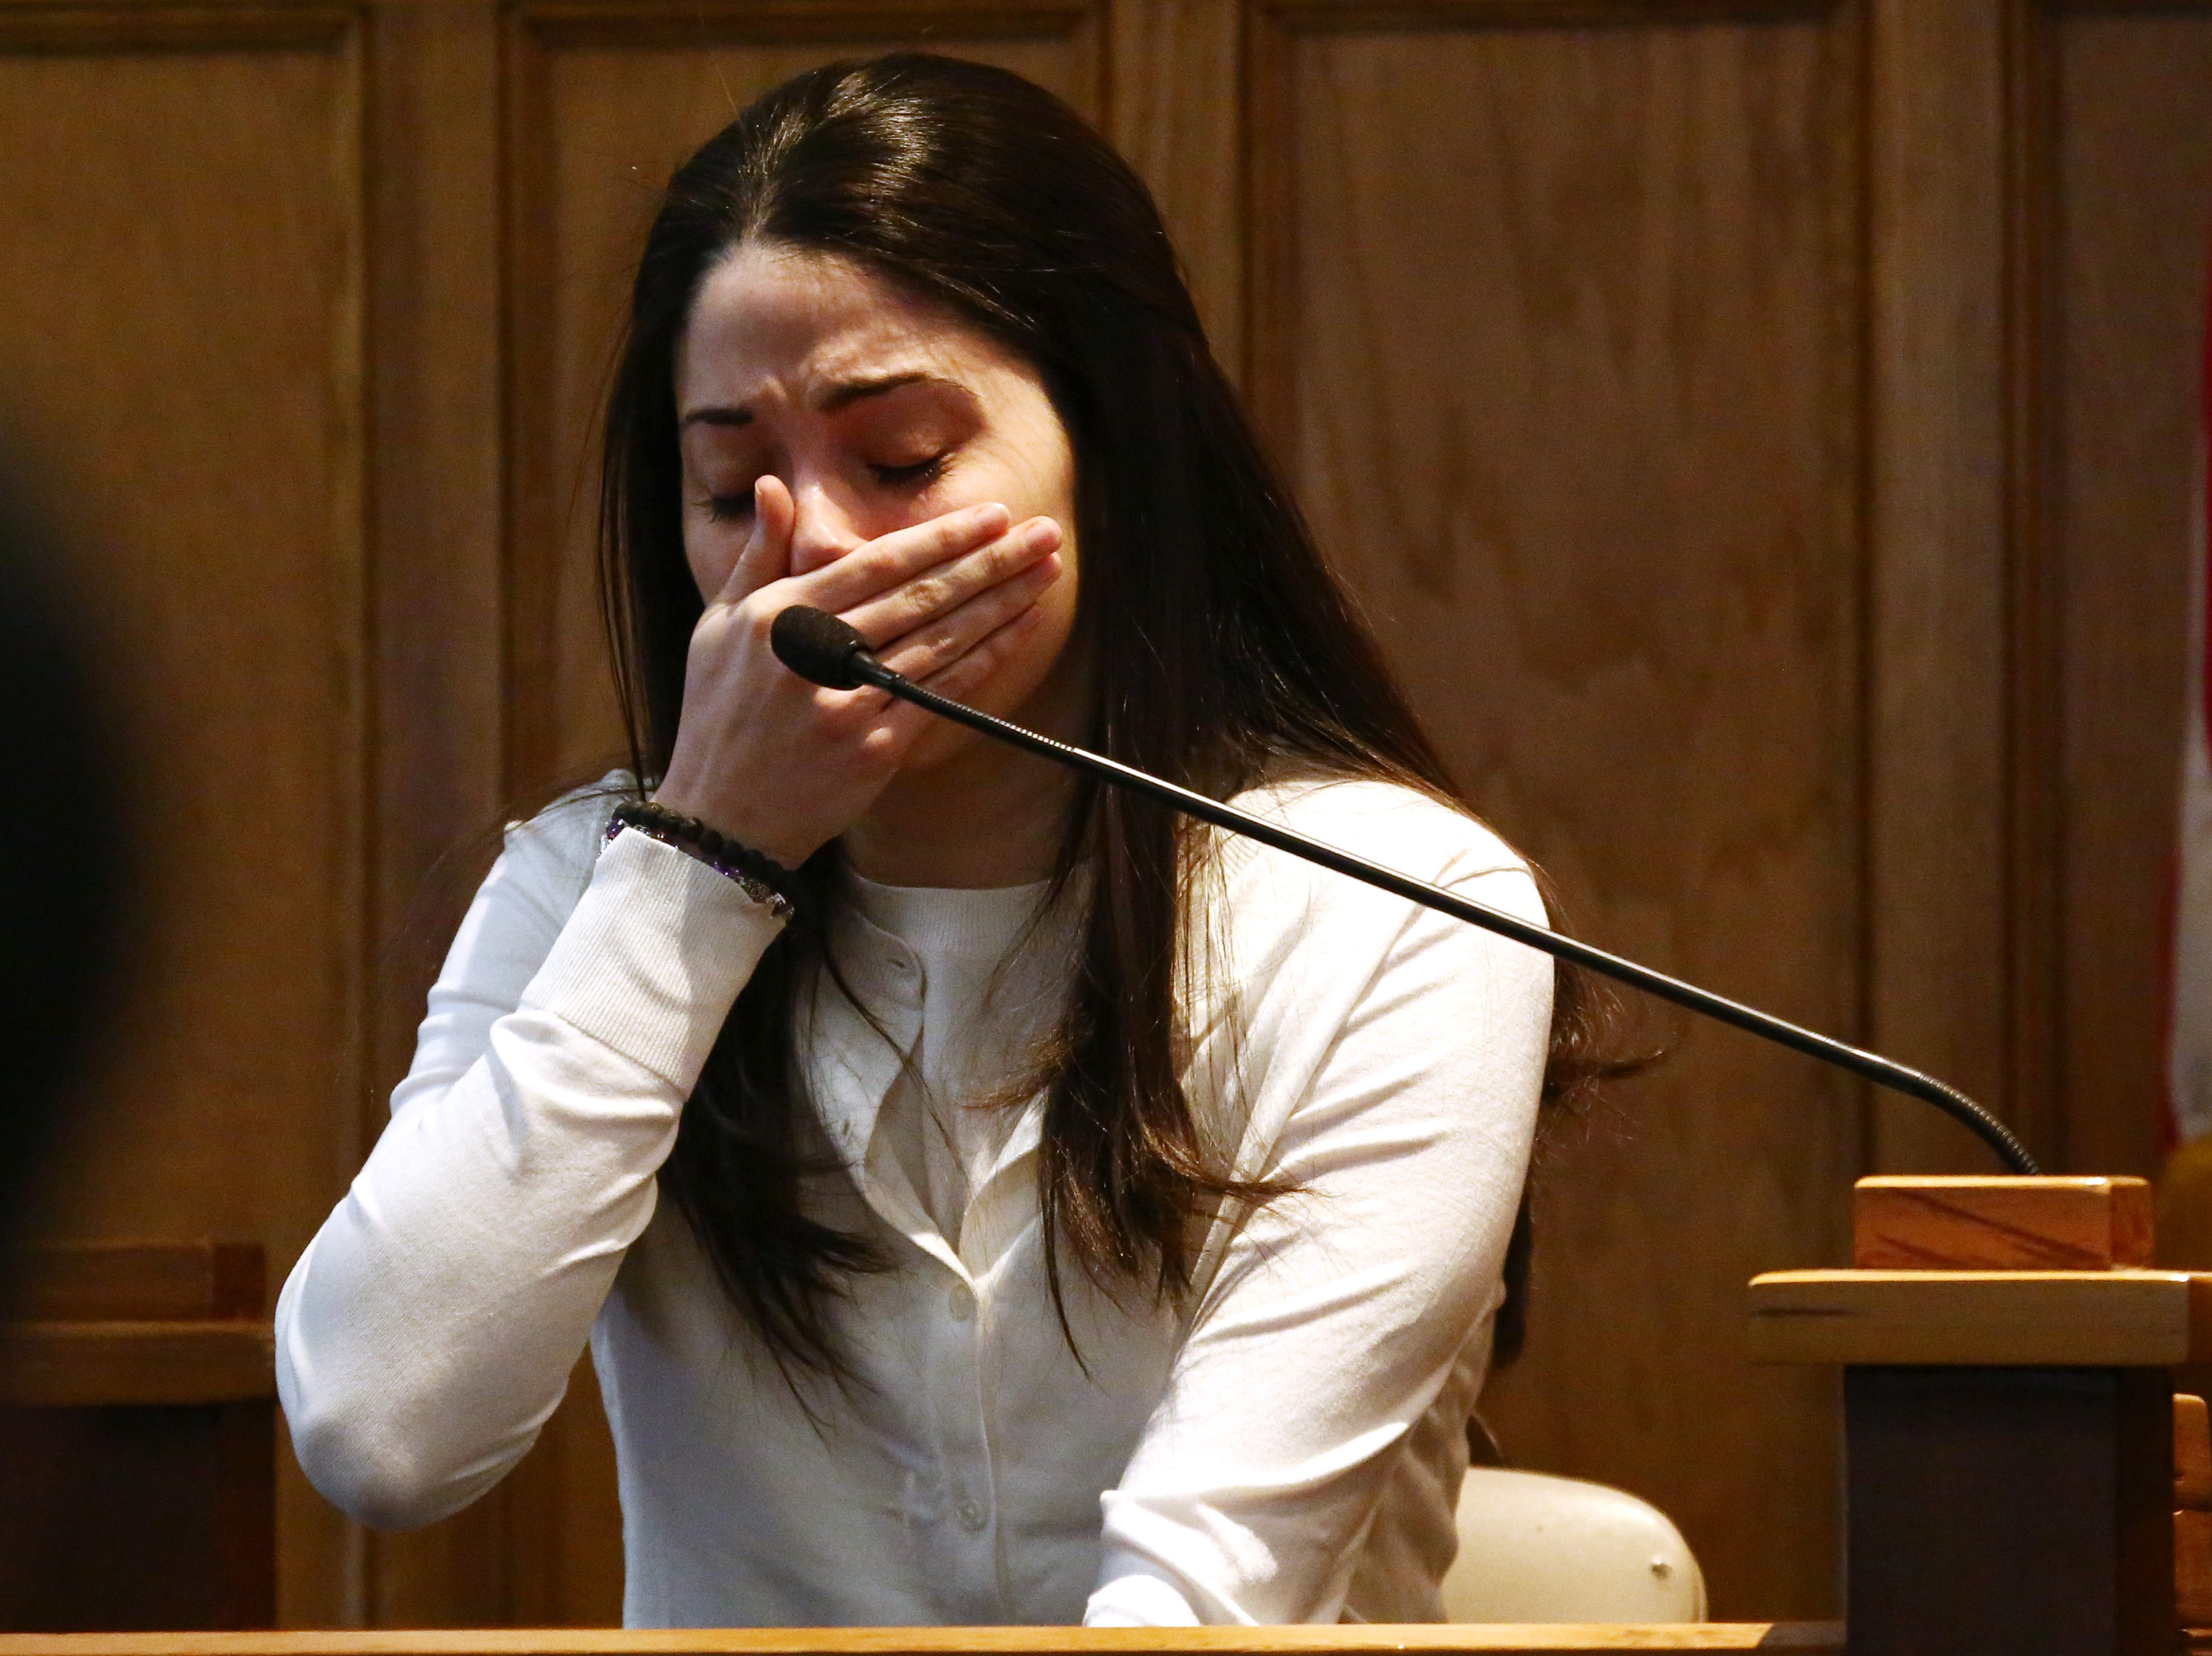 Nicole Addimando shows emotions while talking about her children while on the witness stand during her murder trial in the courtroom of Hon. Edward McLoughlin on March 25, 2019.